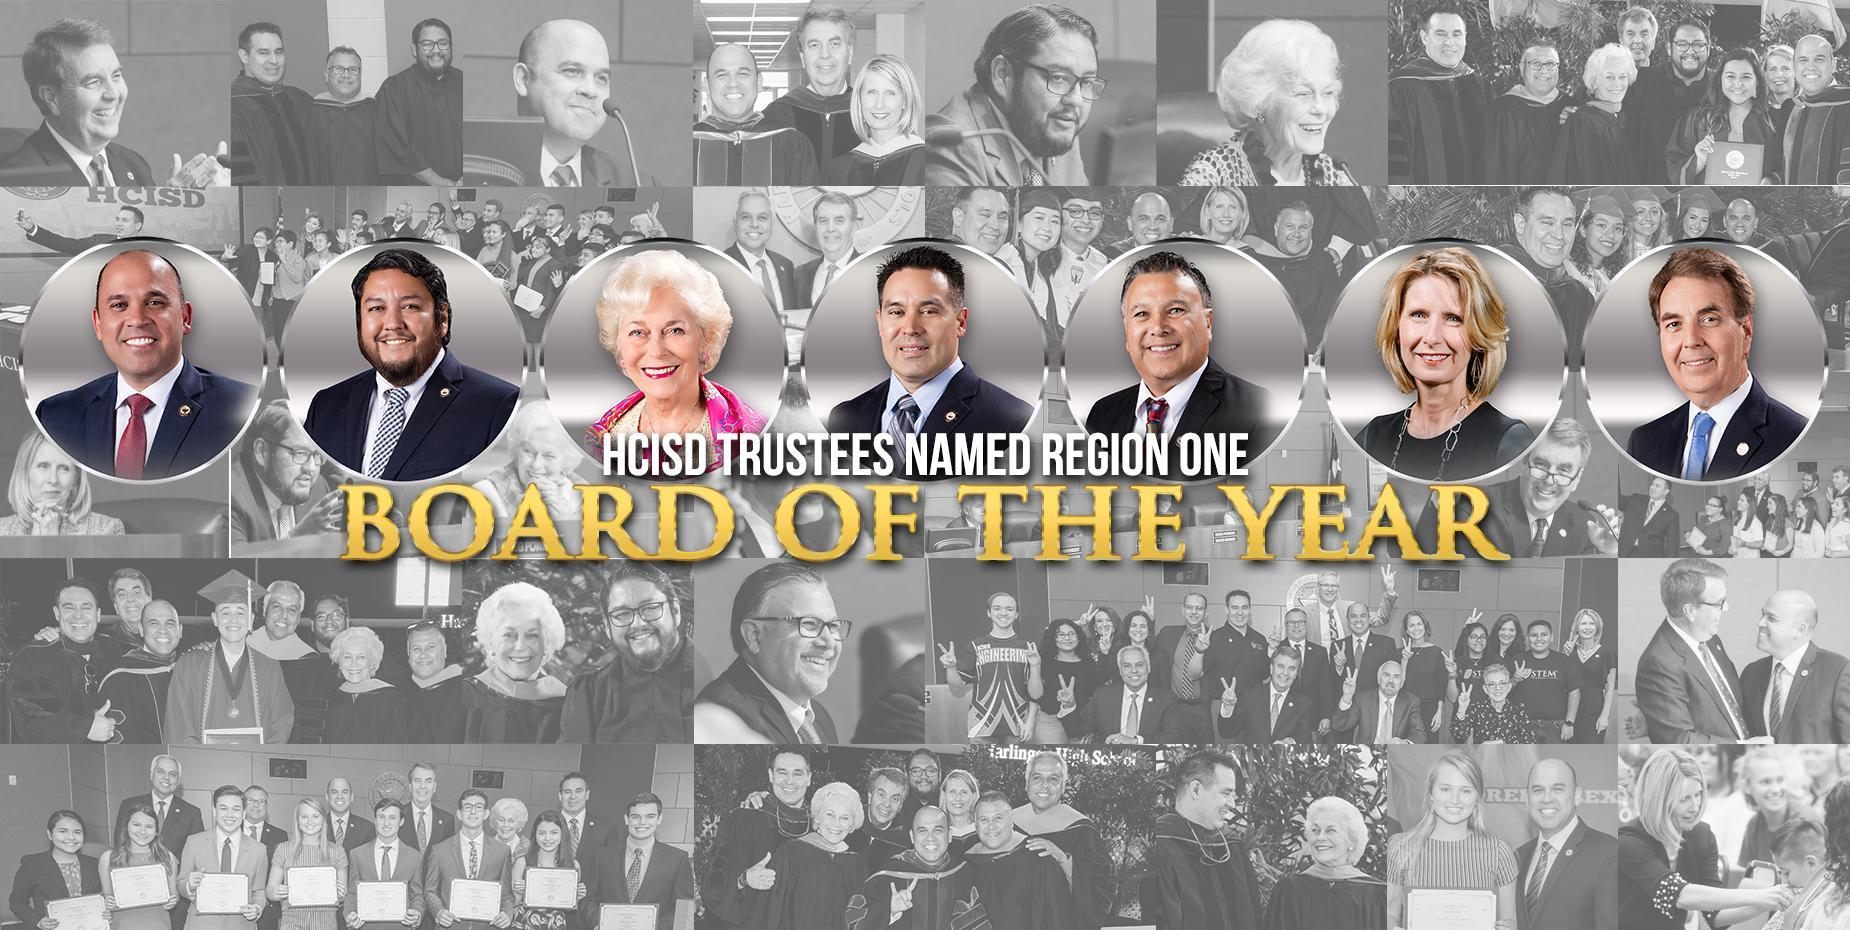 HCISD Board of Trustees Recognized as Region 1 Board of the Year